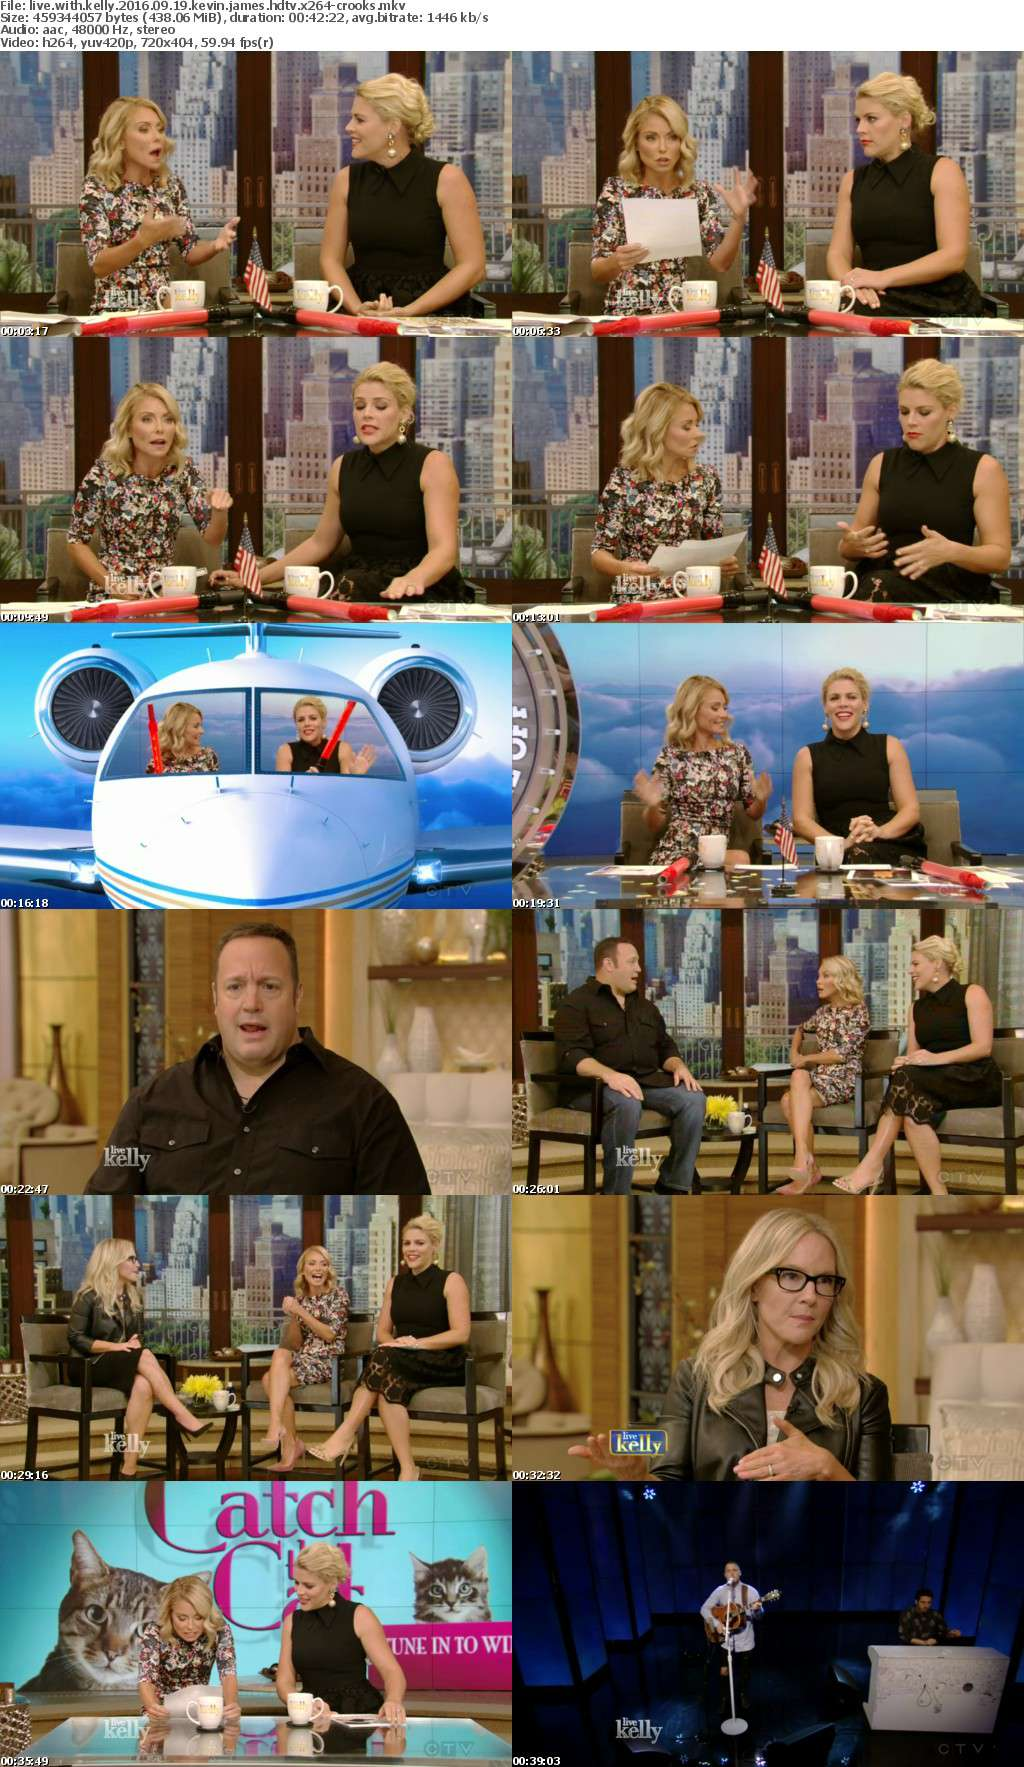 LIVE with Kelly 2016 09 19 Kevin James HDTV x264-CROOKS